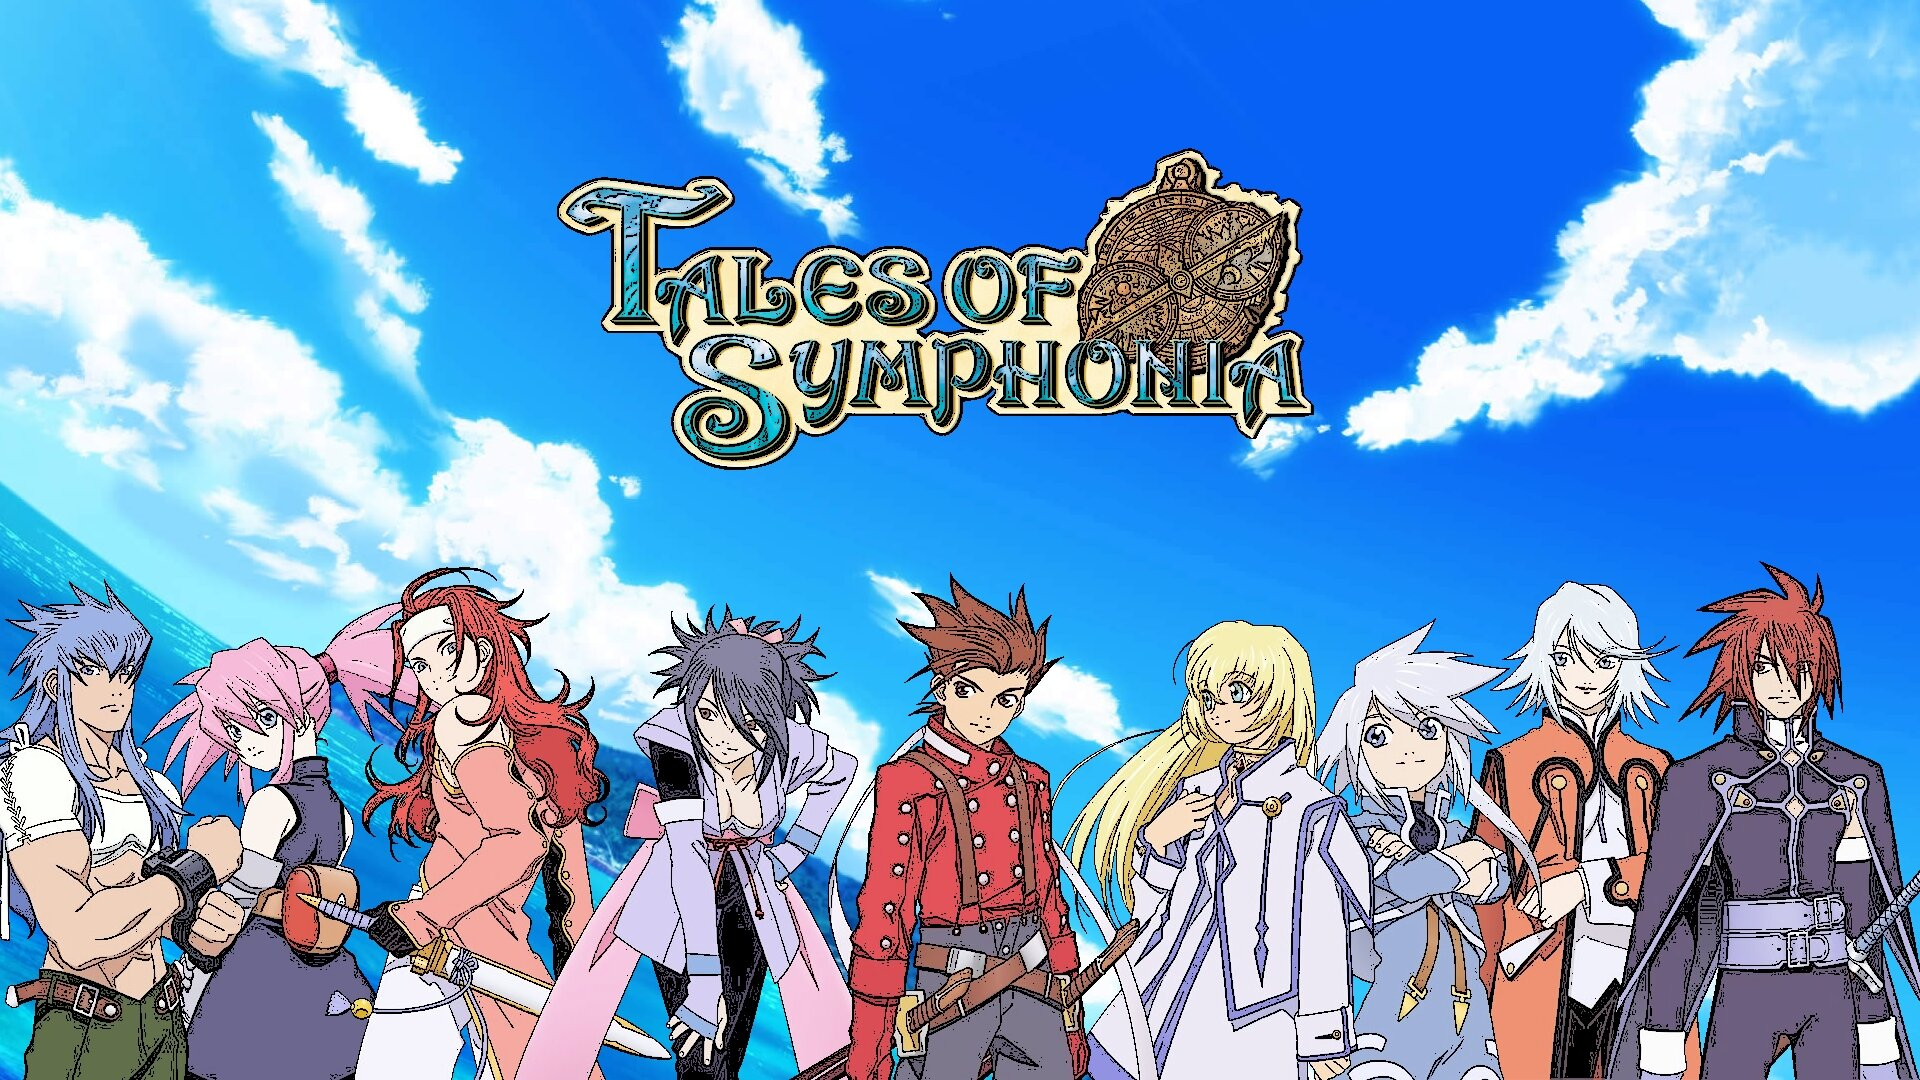 We?re hearing that Tales of Symphonia and Tales of Symphonia: Dawn